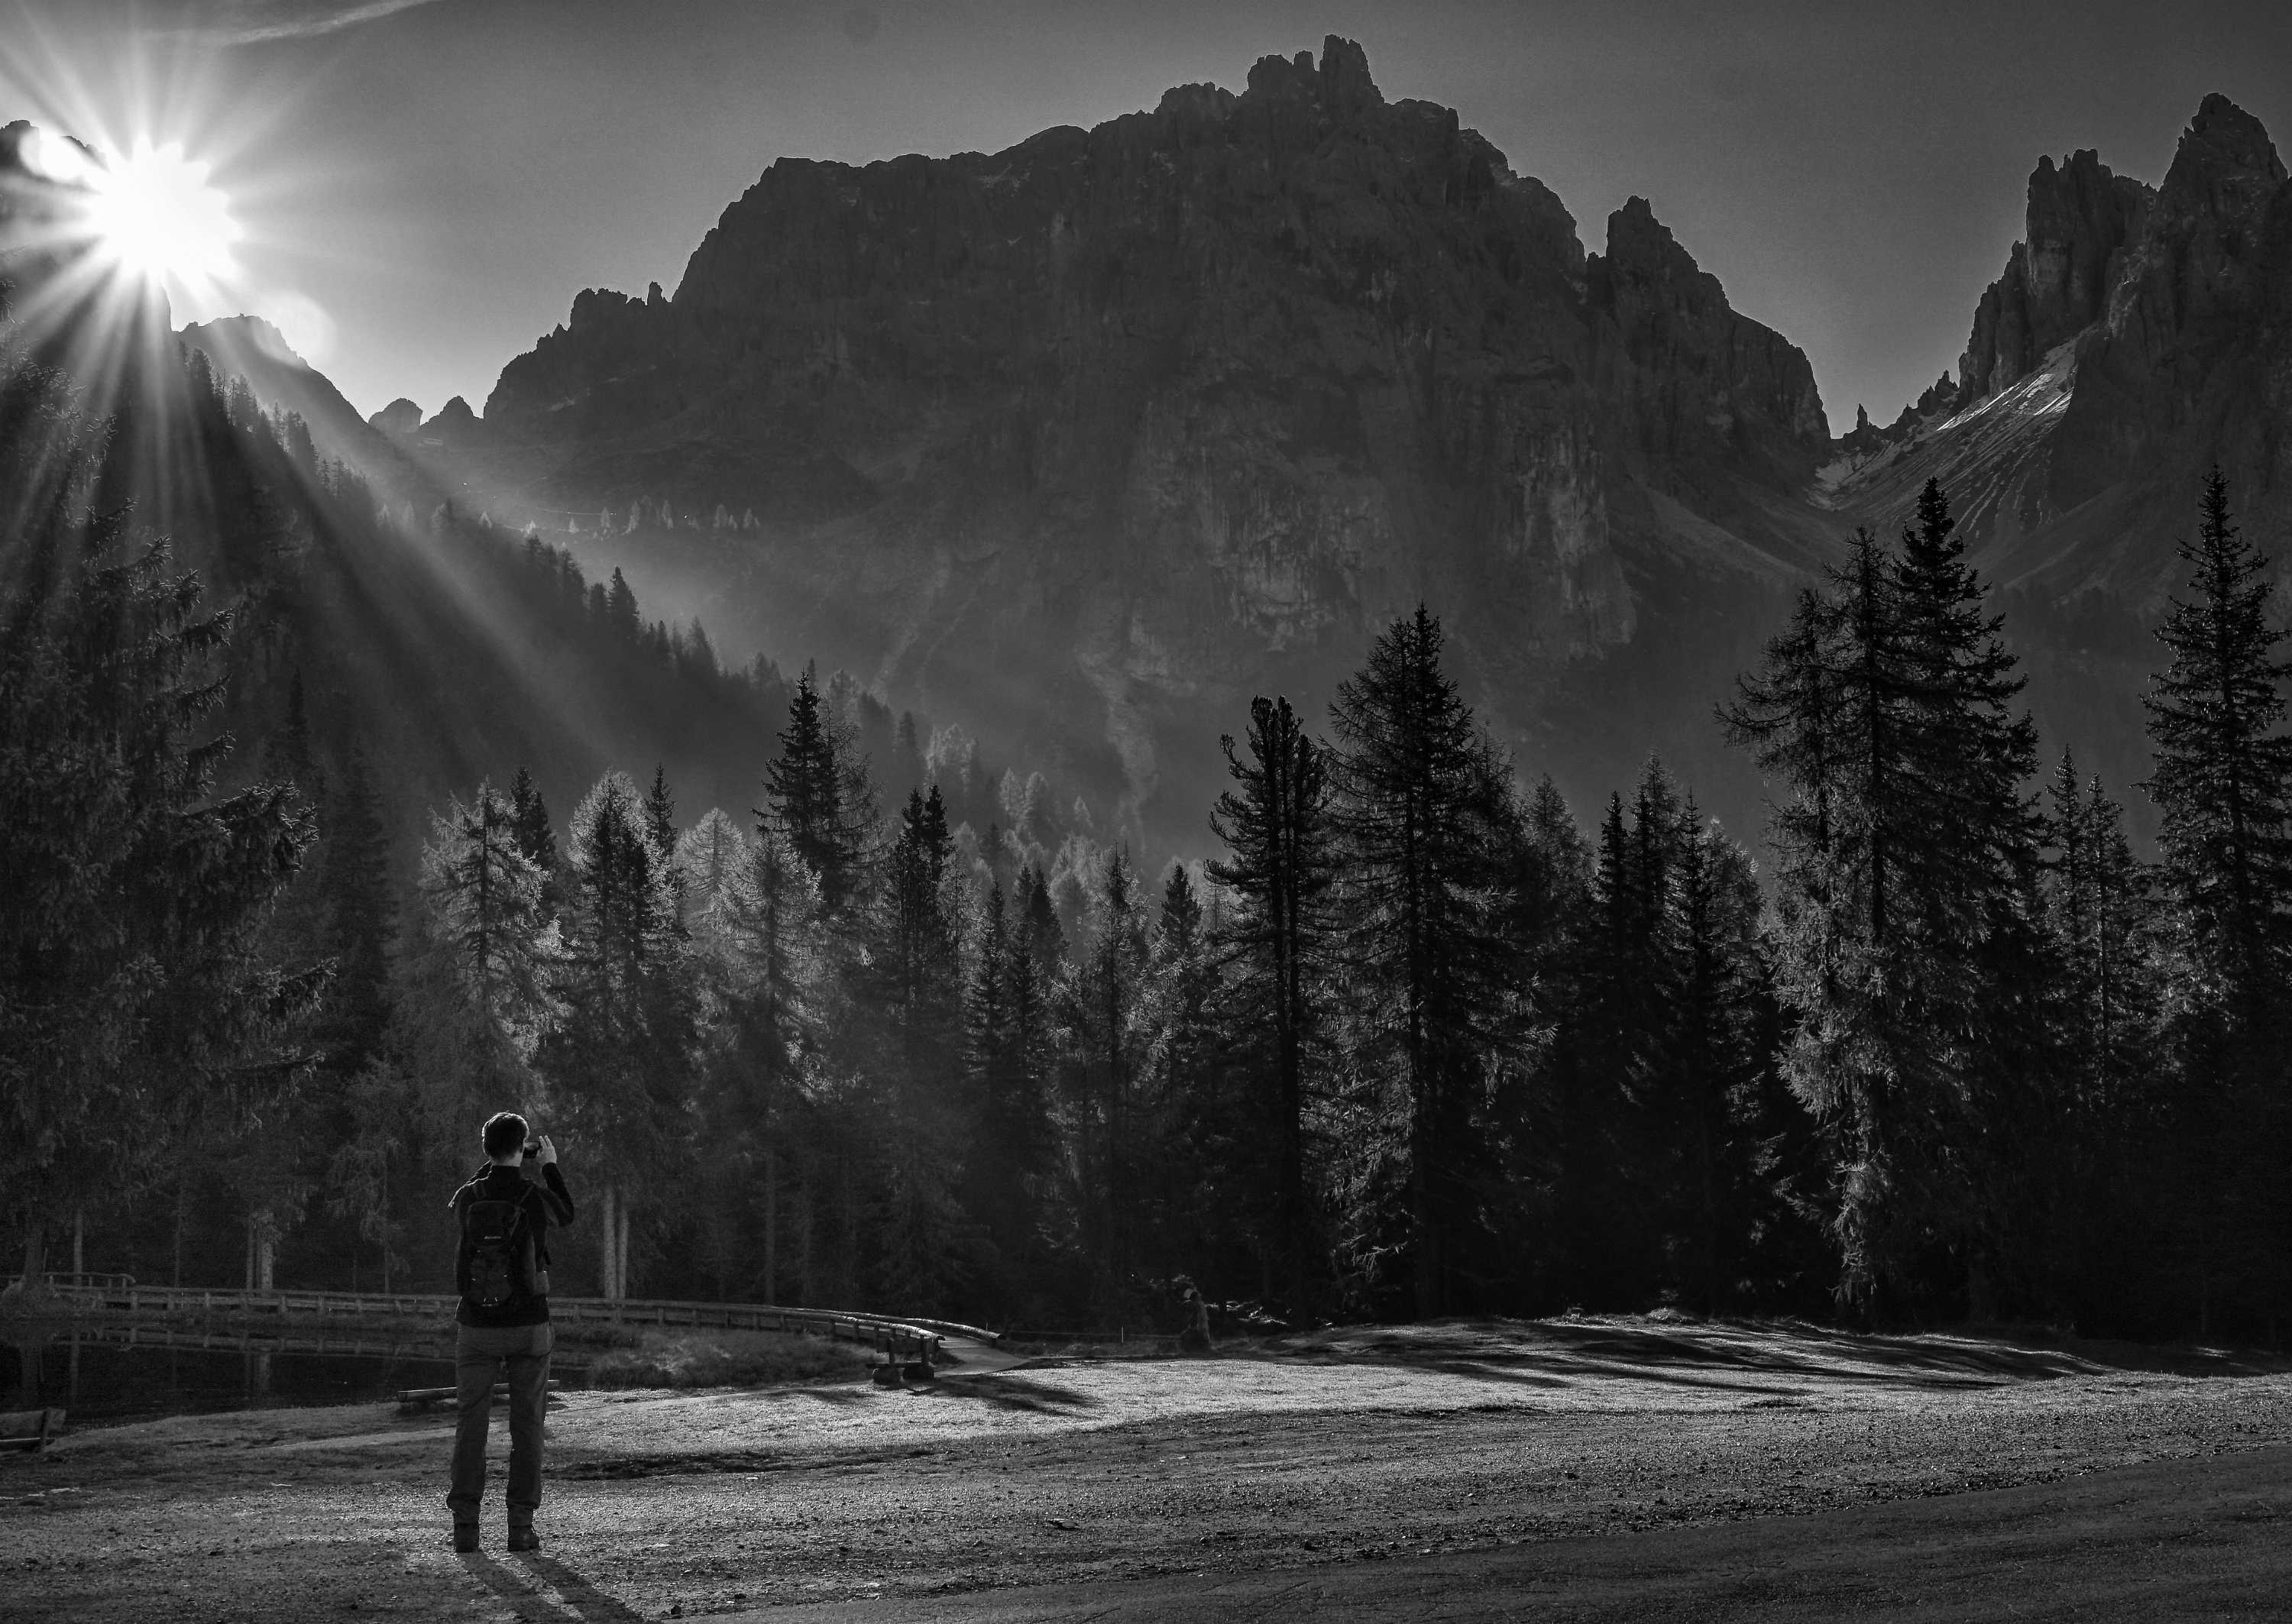 Classic Dolomites in Black & White by Janice Law - Photo Competition winner November 2017